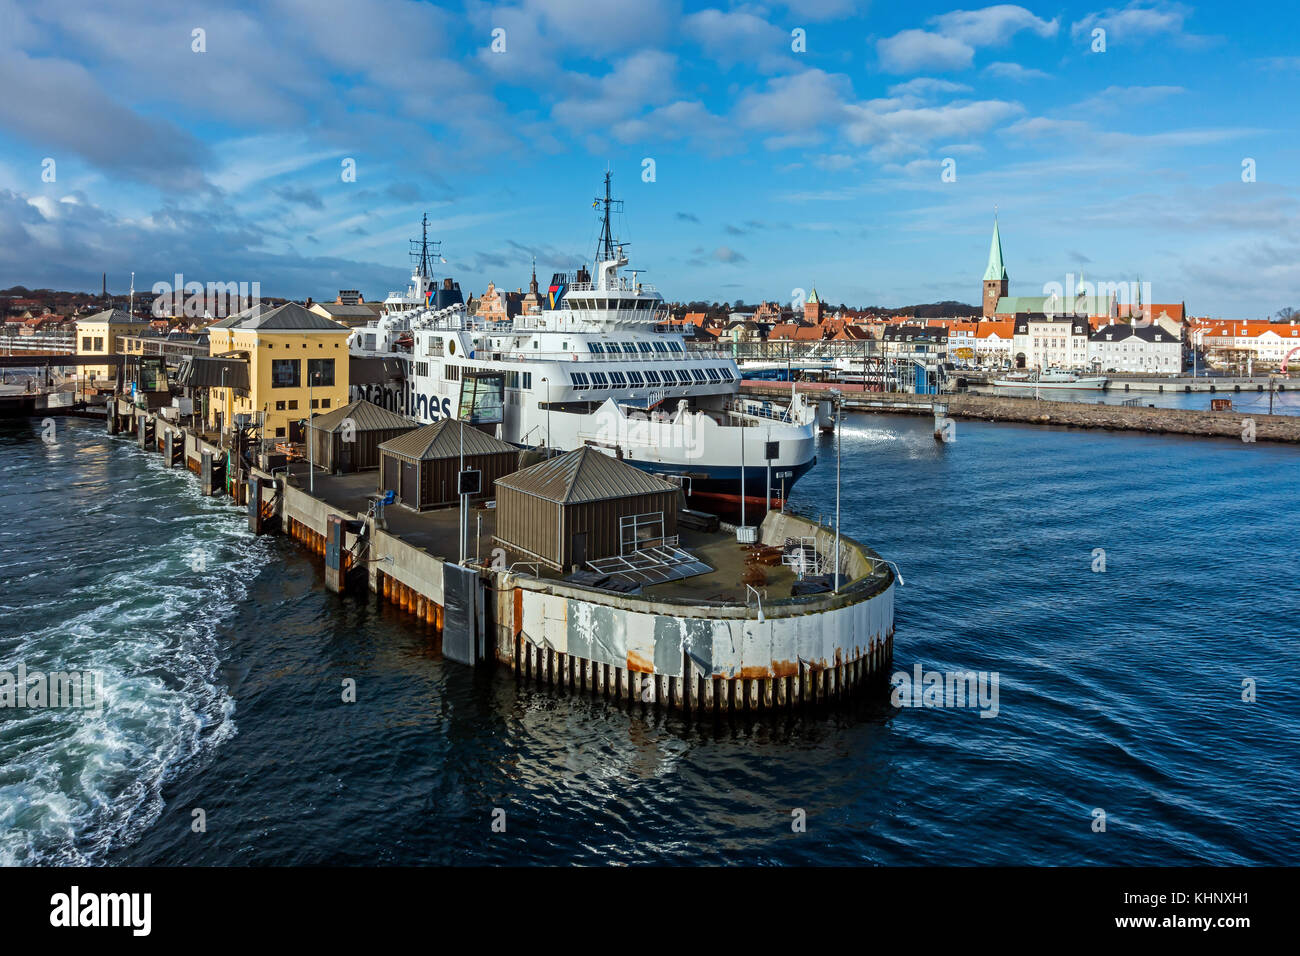 Scandlines Ro-Ro ferry terminal in Elsinore harbour Elsinore Denmark Europe with car and passenger ferry Hamlet - Stock Image